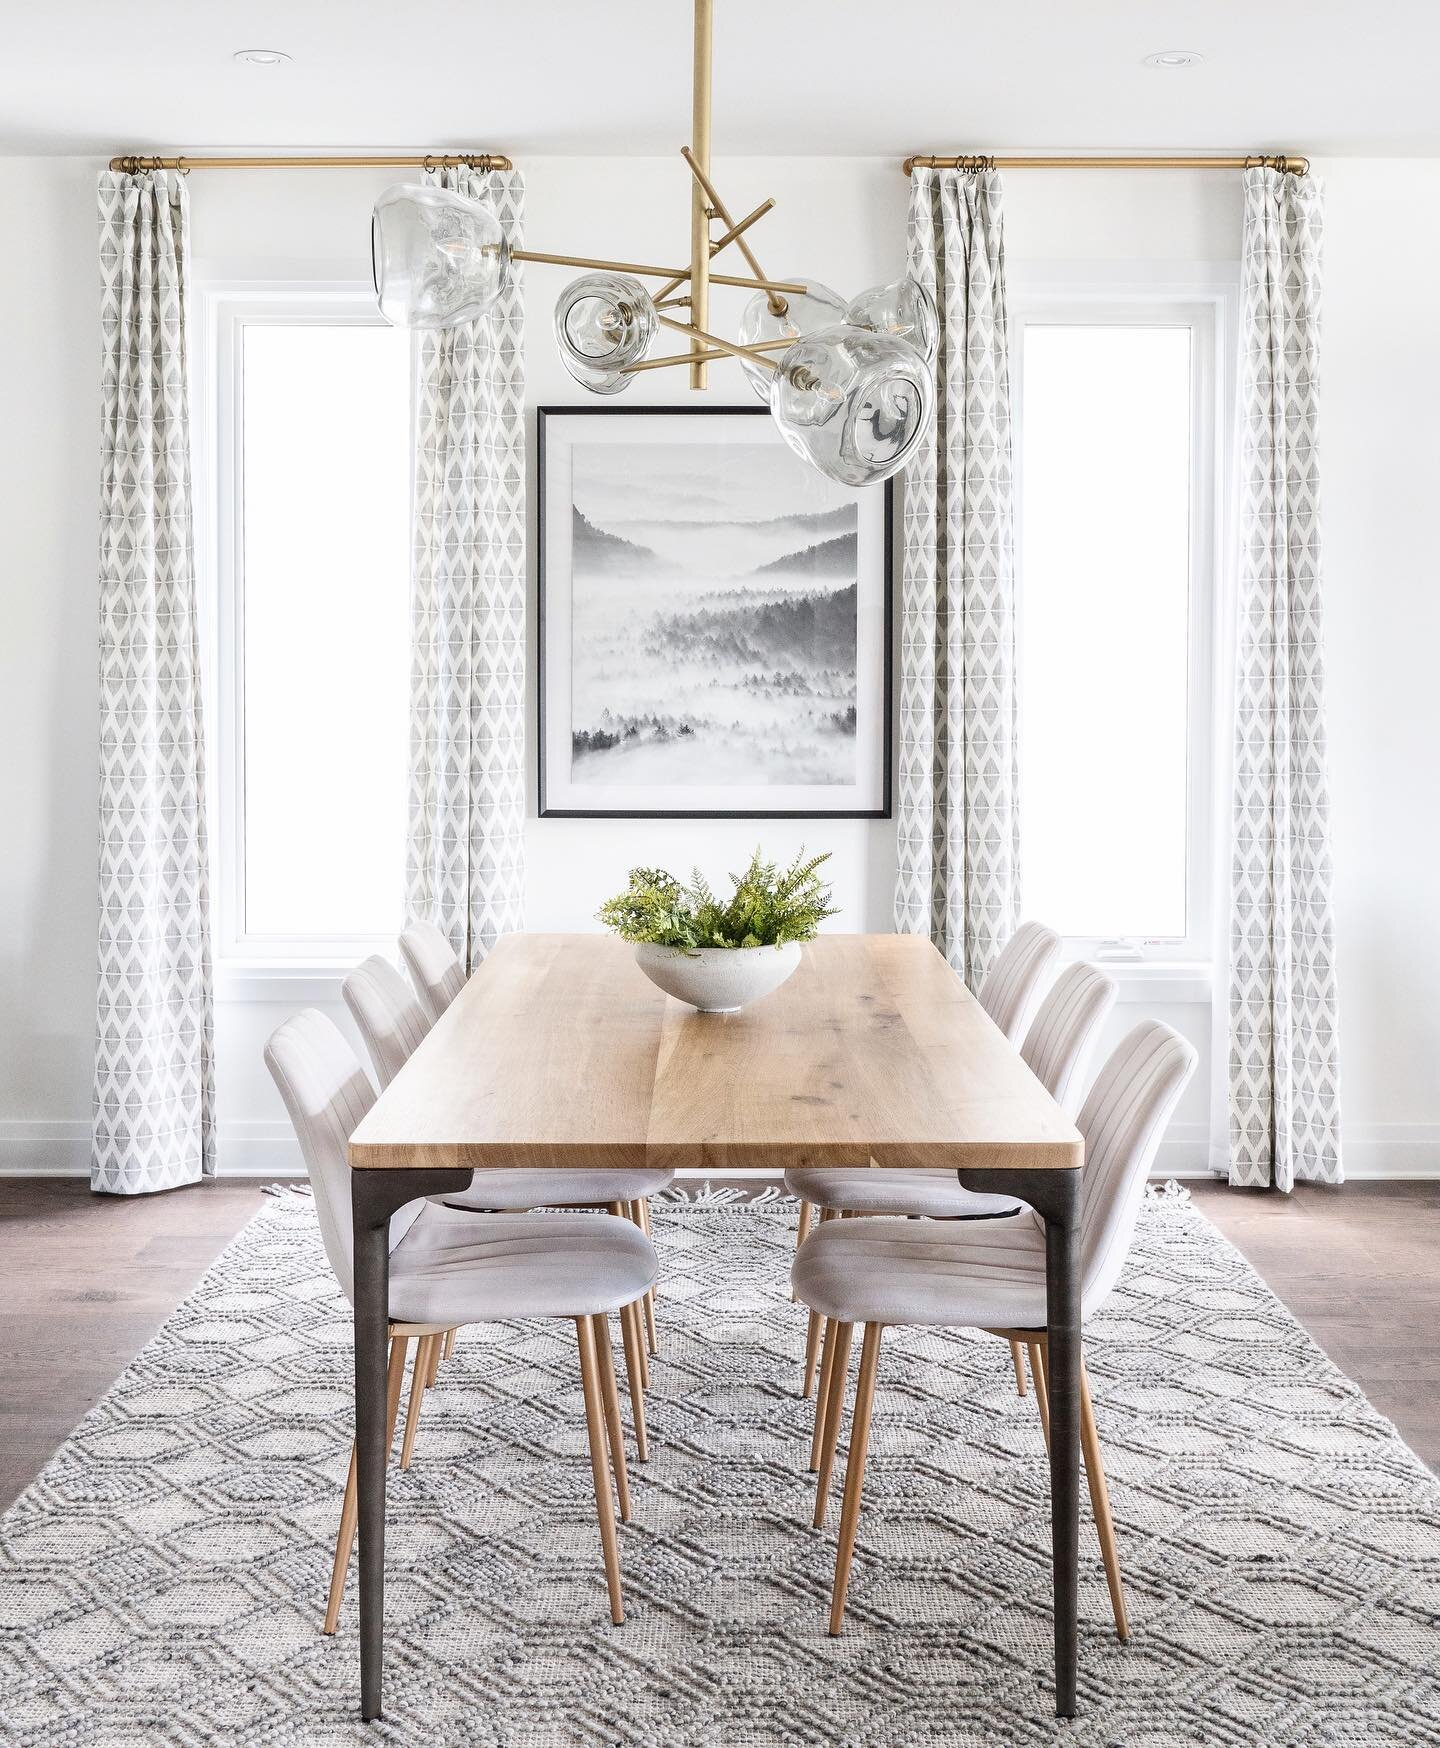 Shop the dining room |   Peter Dining Table  ,   Milton Chandelier  ,   Layered Mountain Fog 1 Framed Print  ,     Holloway Grey Rug